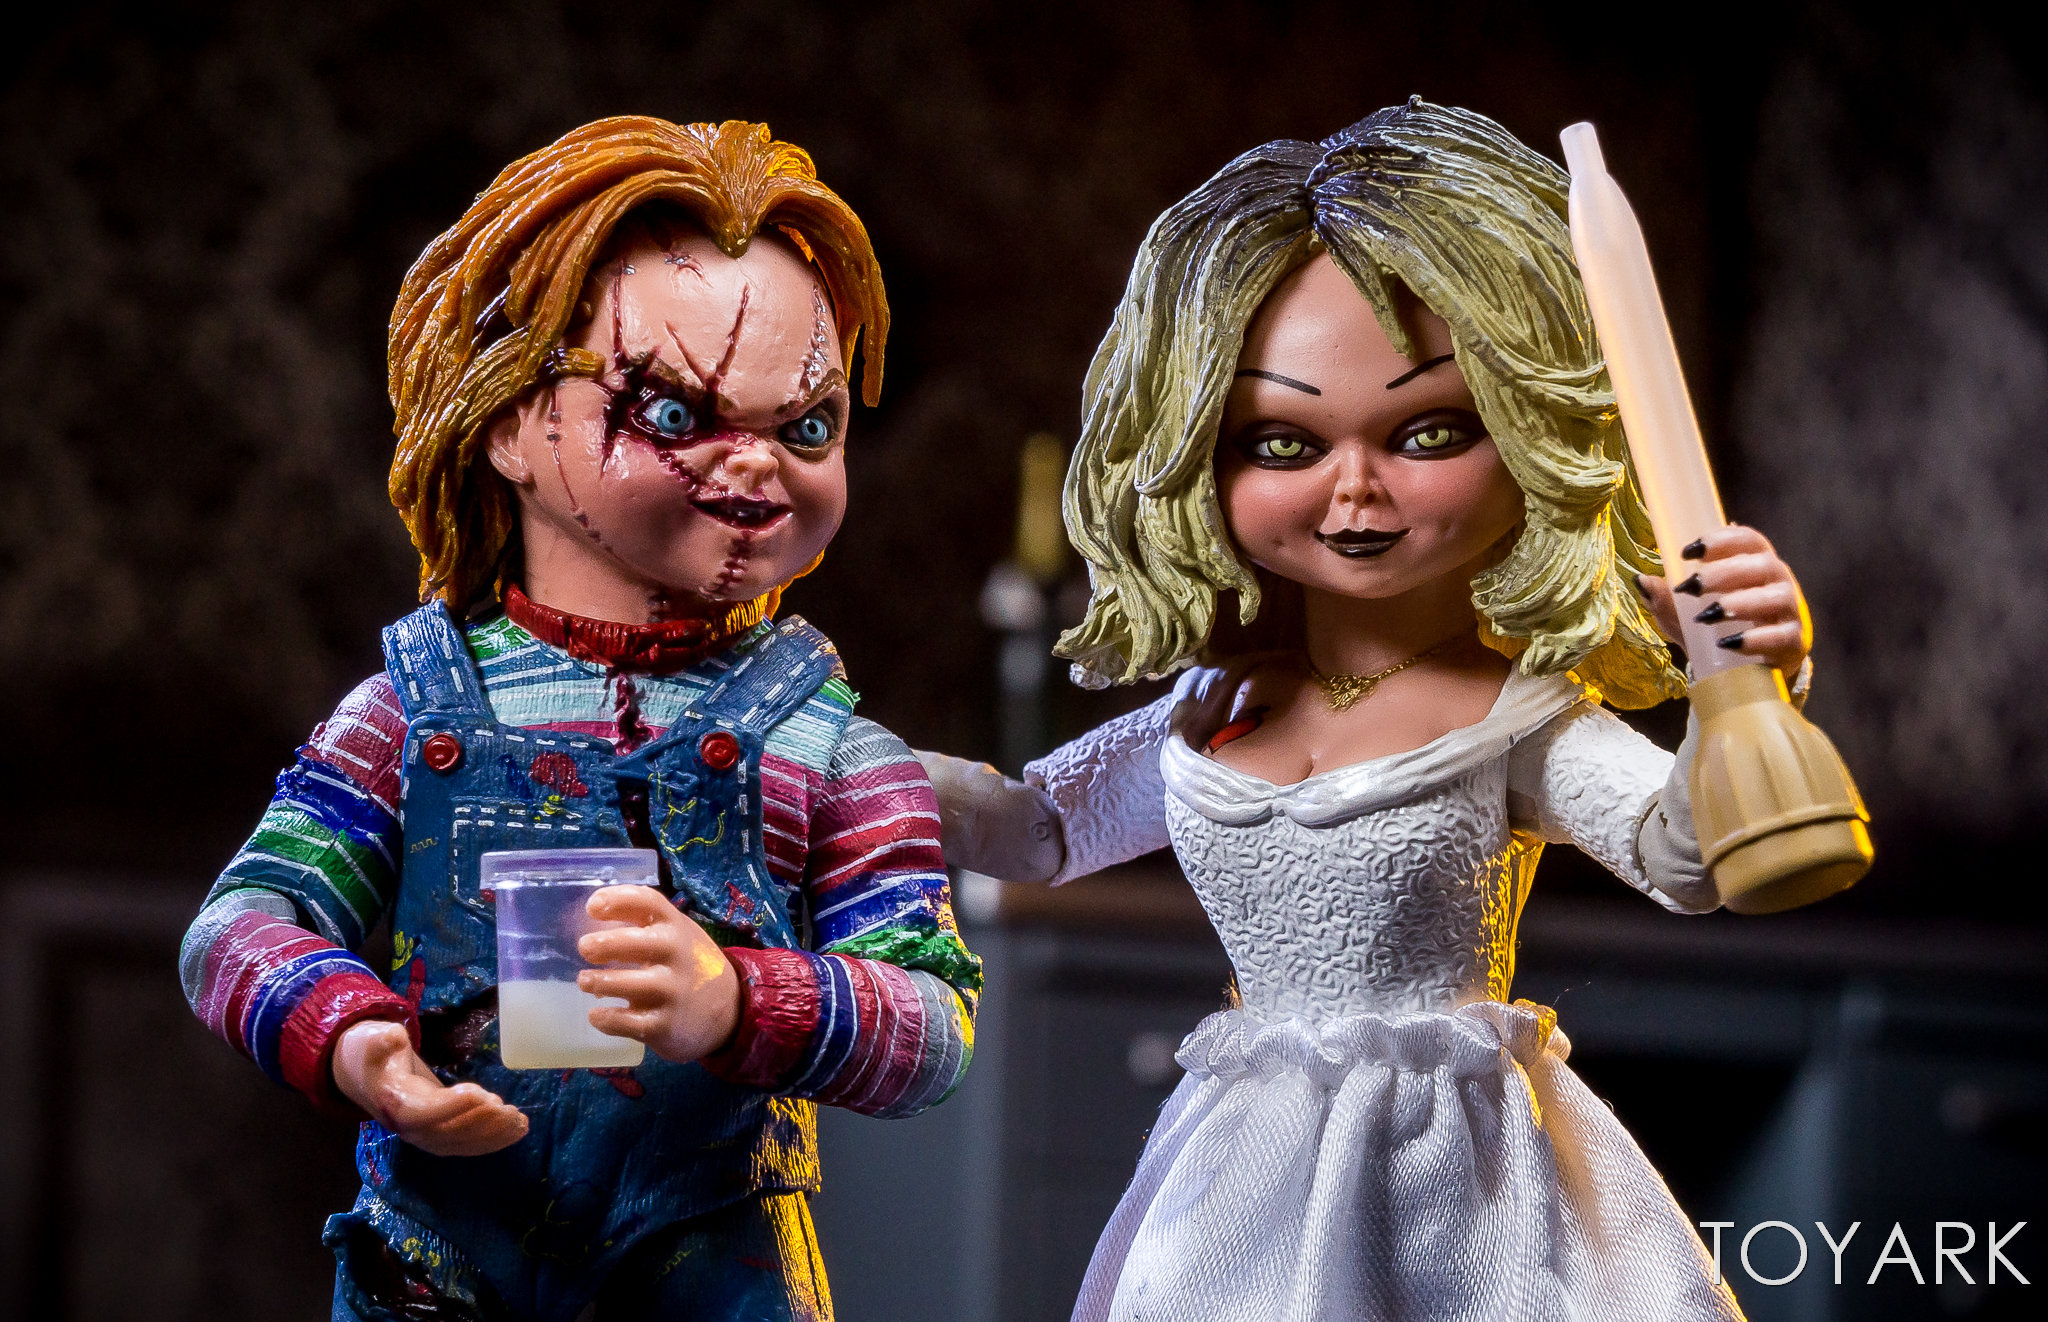 https://news.toyark.com/wp-content/uploads/sites/4/2019/01/Bride-of-Chucky-NECA-Set-050.jpg